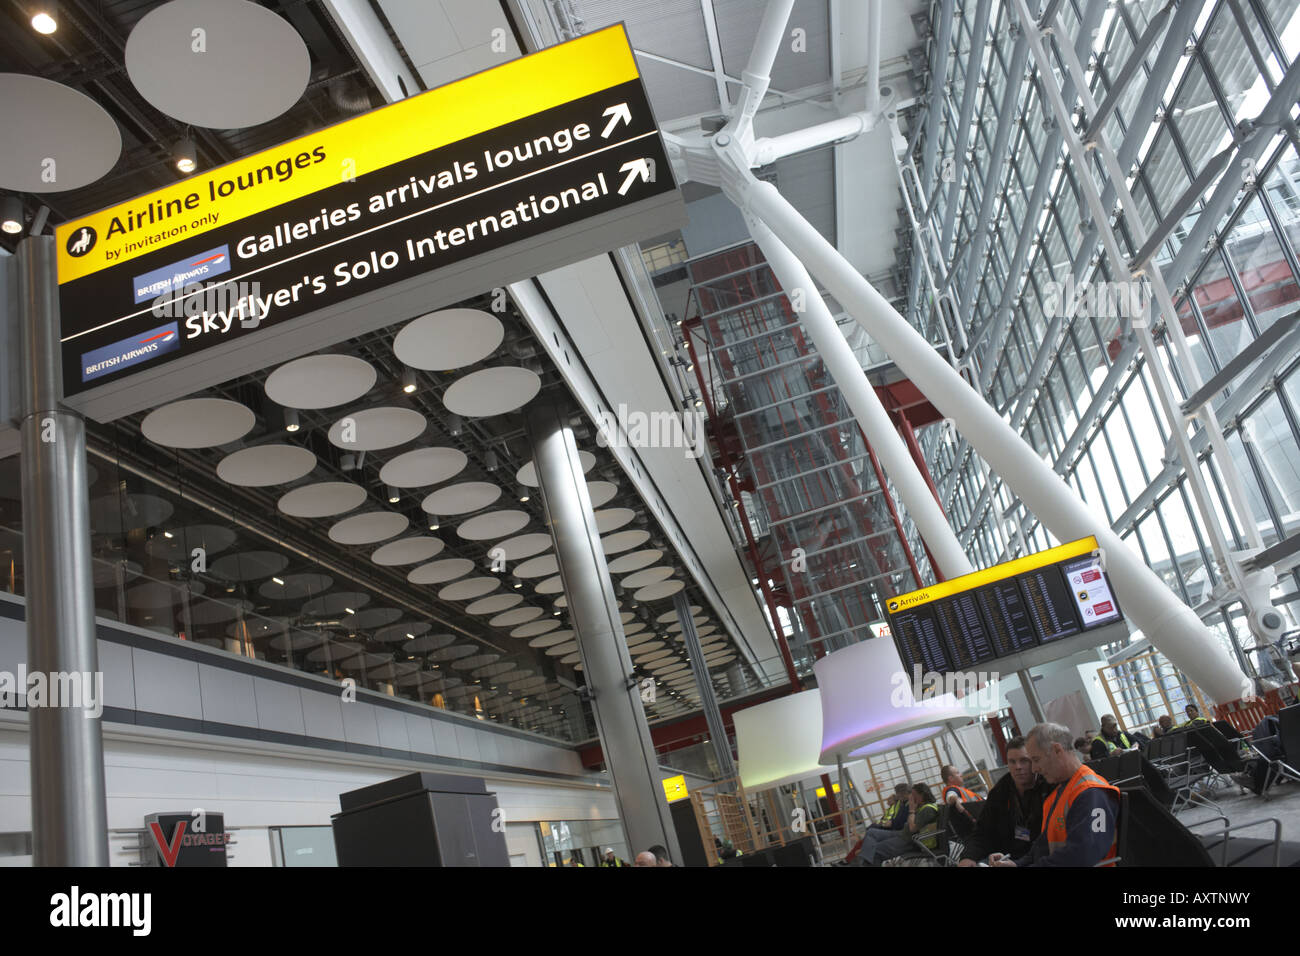 Looking upwards in landside Departures area newly opened London Heathrow Airport's Terminal 5 building - Stock Image